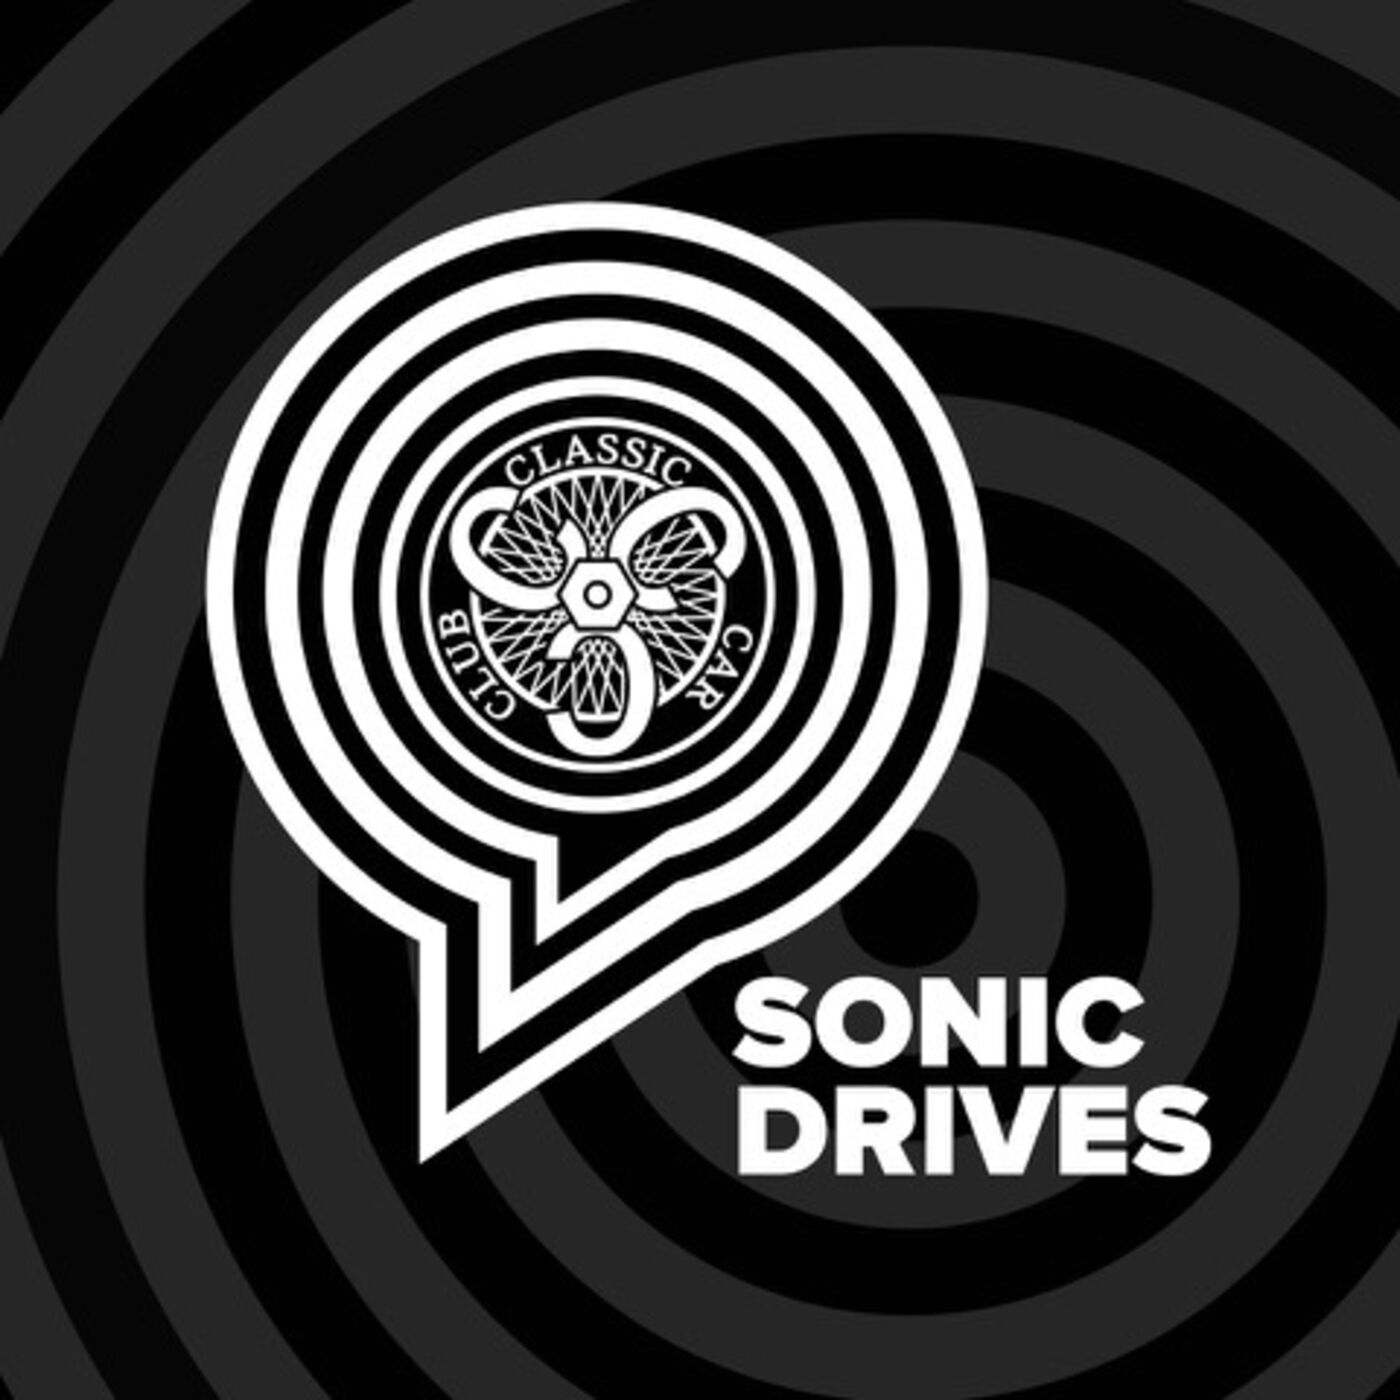 Classic Car Club Sonic Drives